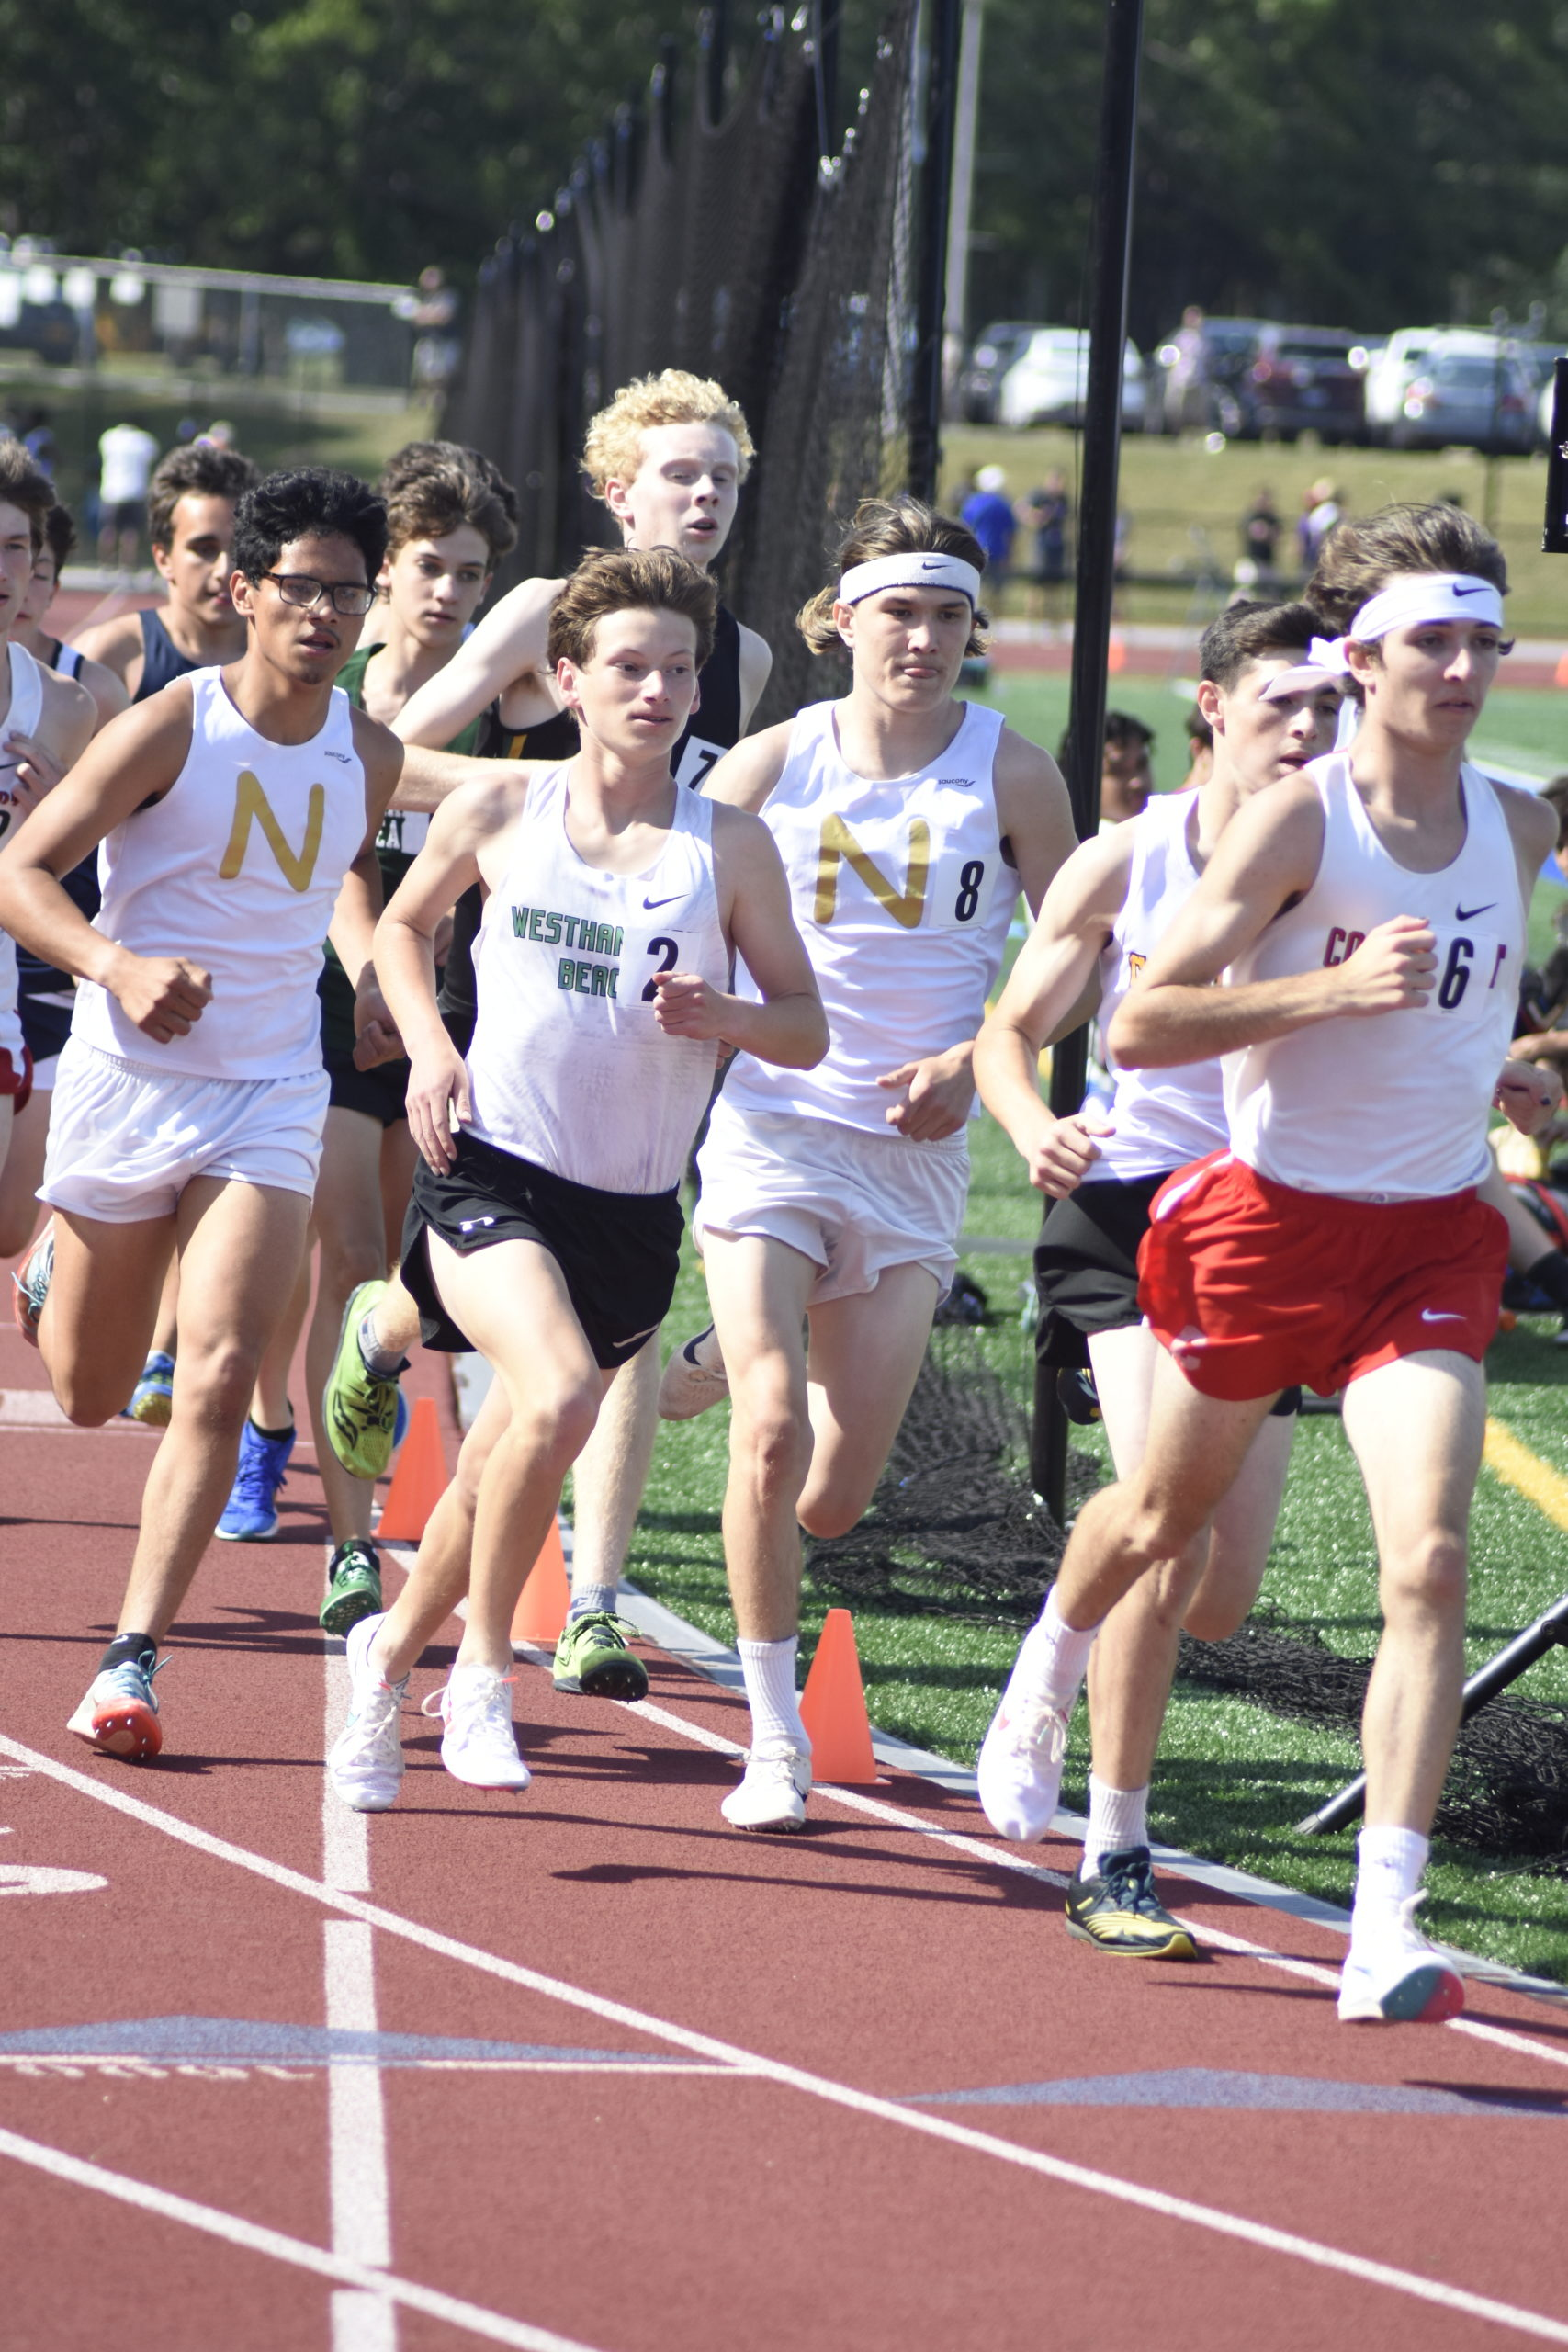 Westhampton Beach sophomore Maximus Haynia at the start of the 3,200-meter race, which he won.